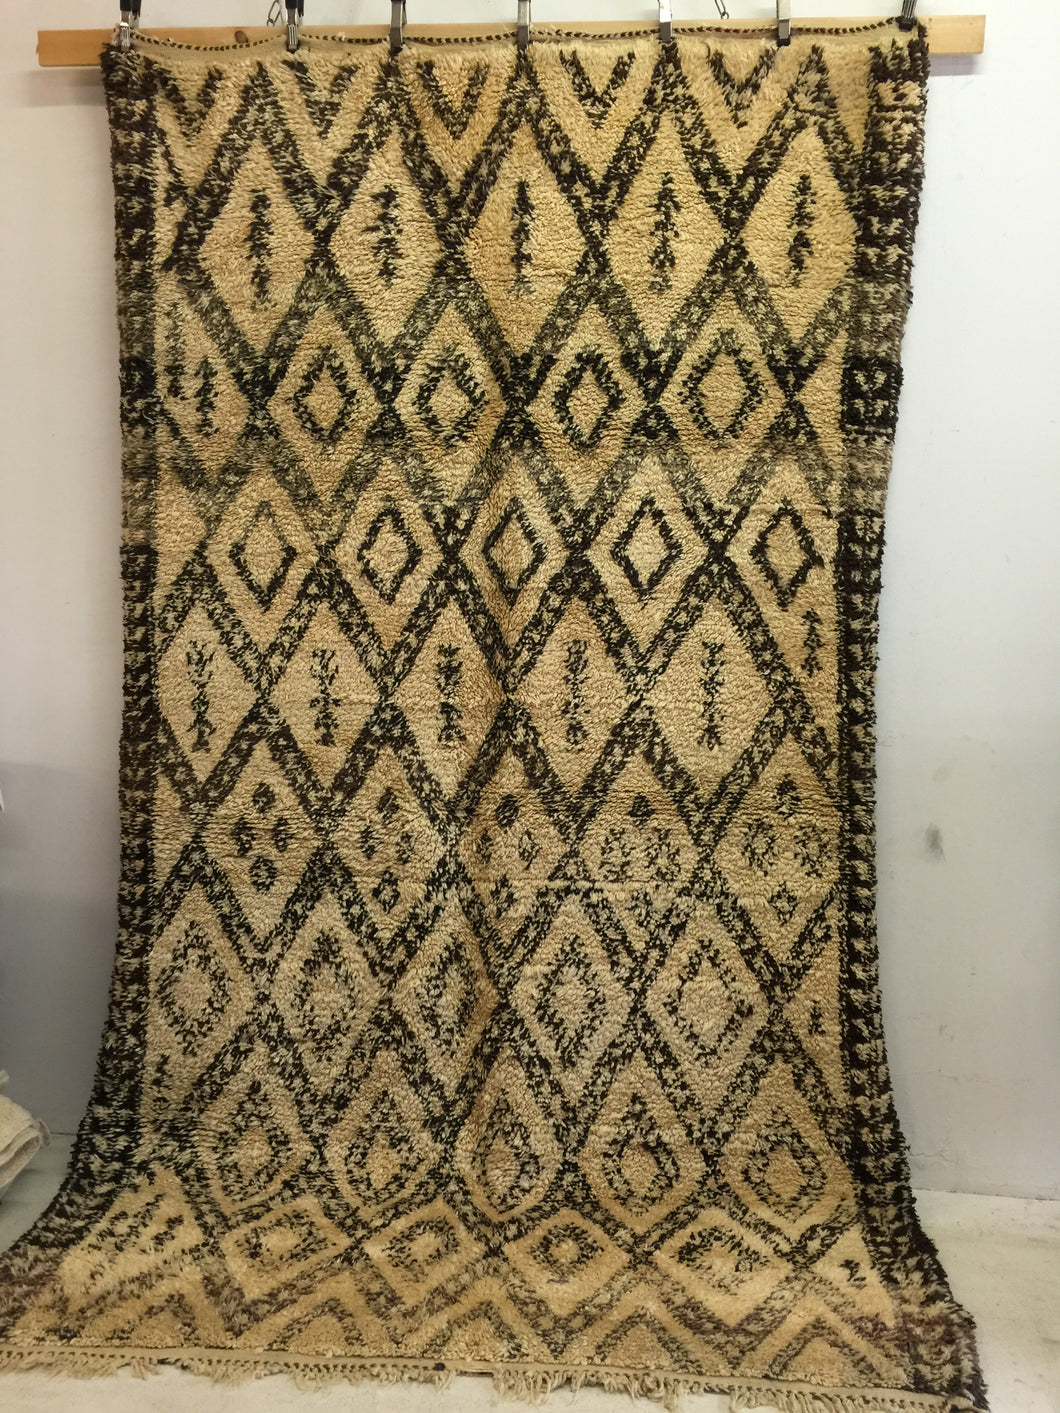 Large vintage beni ourain shaggy carpet